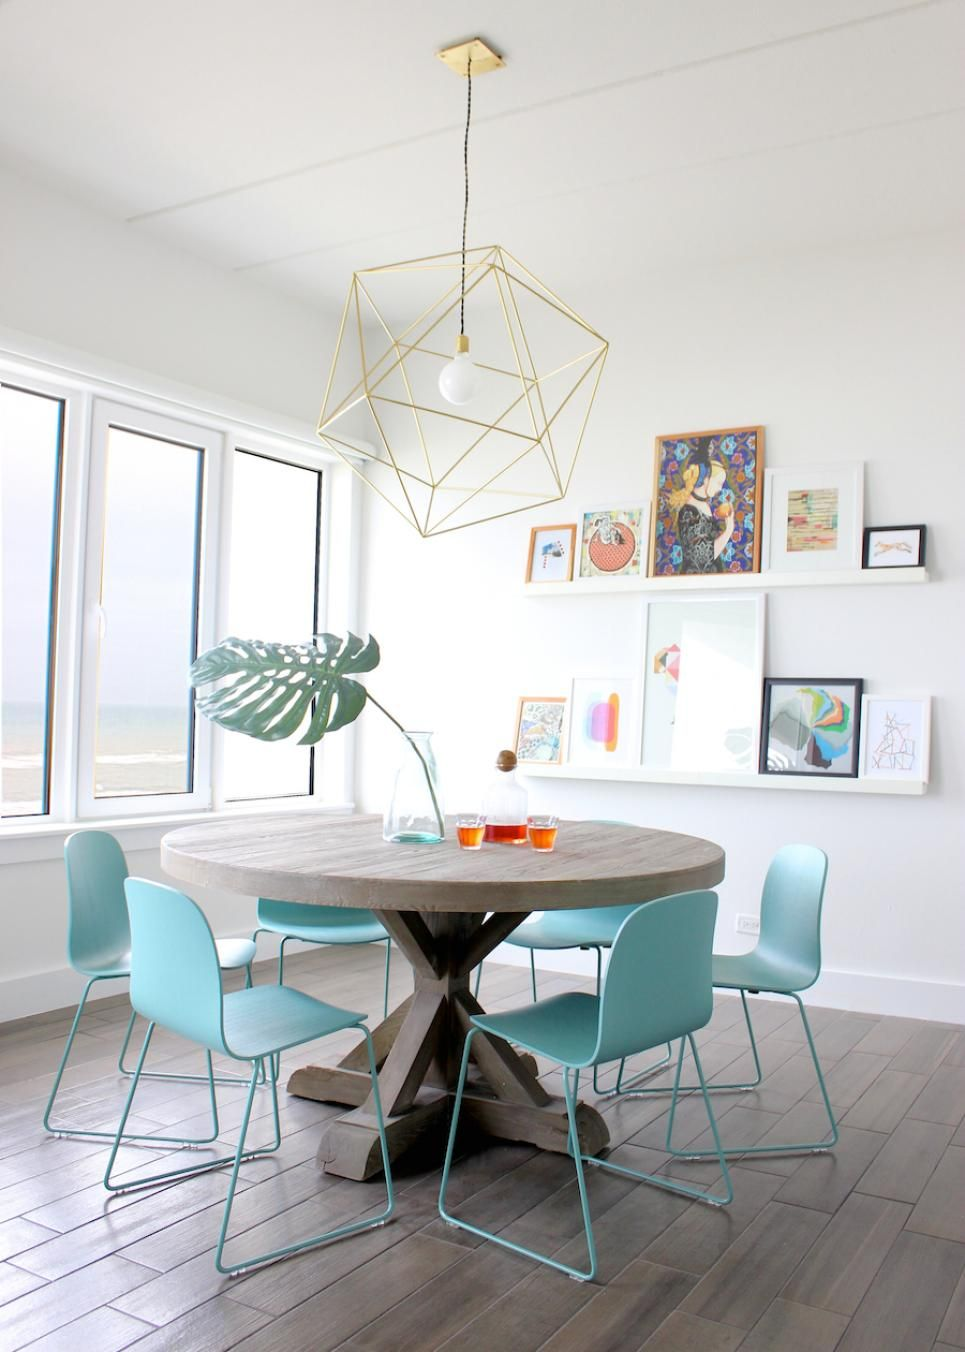 A Round Wooden Dining Table Softens The Sharp Clean Lines In This